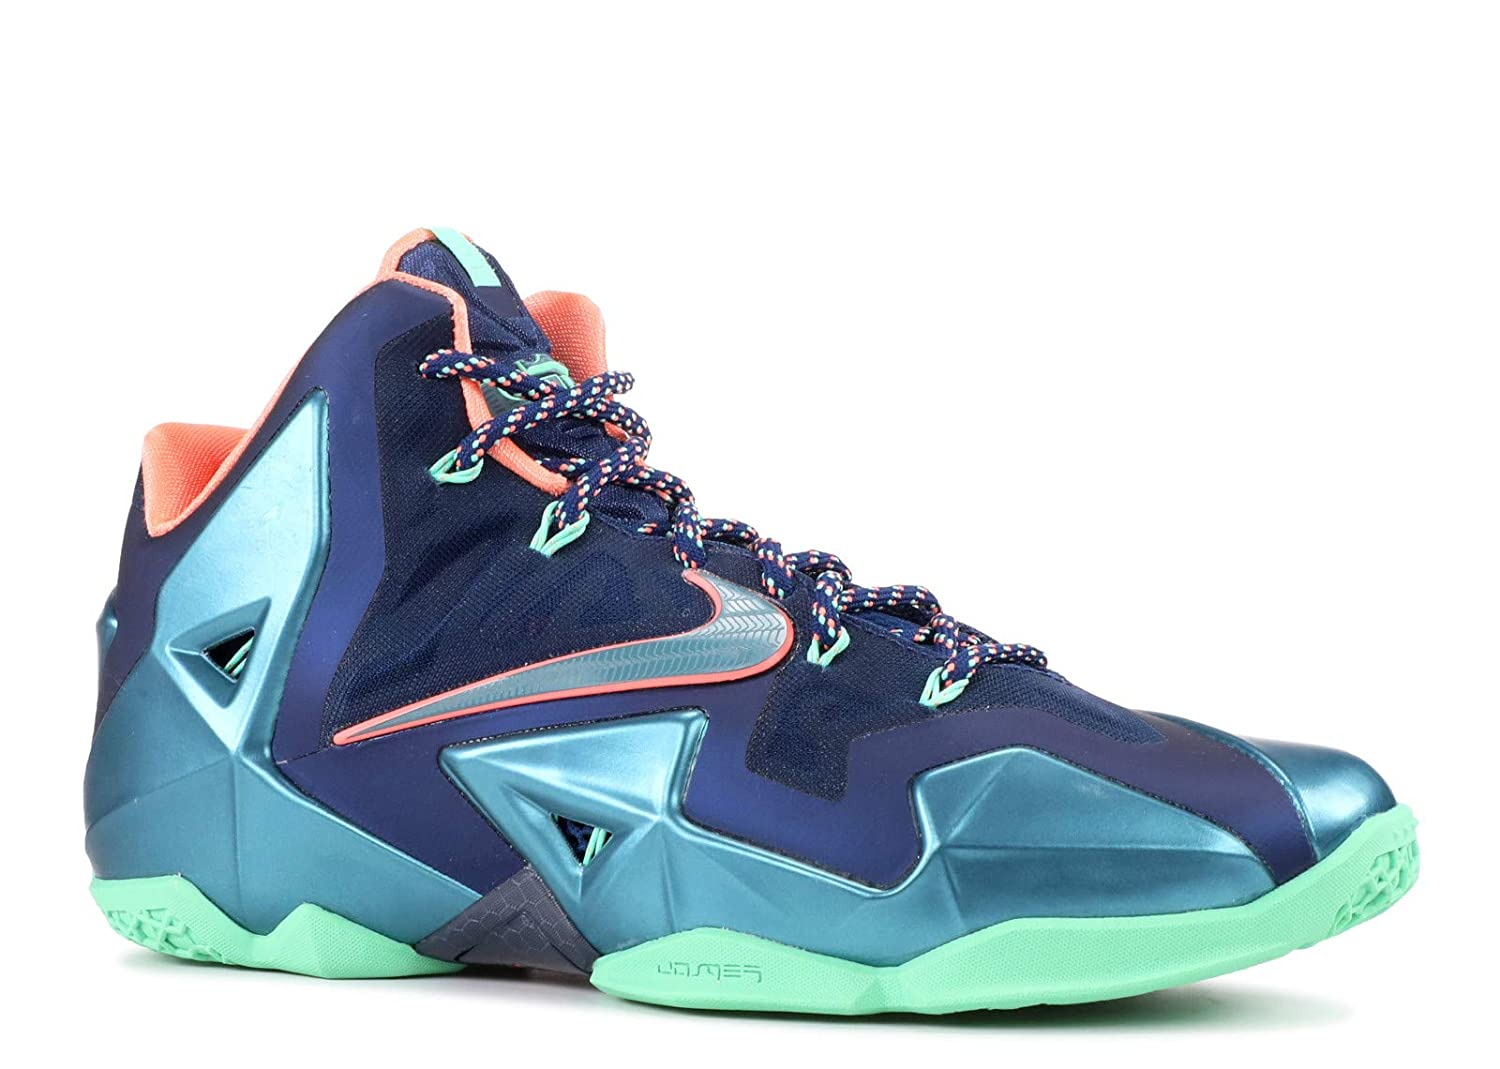 online retailer 6b27d 2364c Amazon.com | Nike Lebron XI Miami Vs Akron Men's Shoes Brave ...